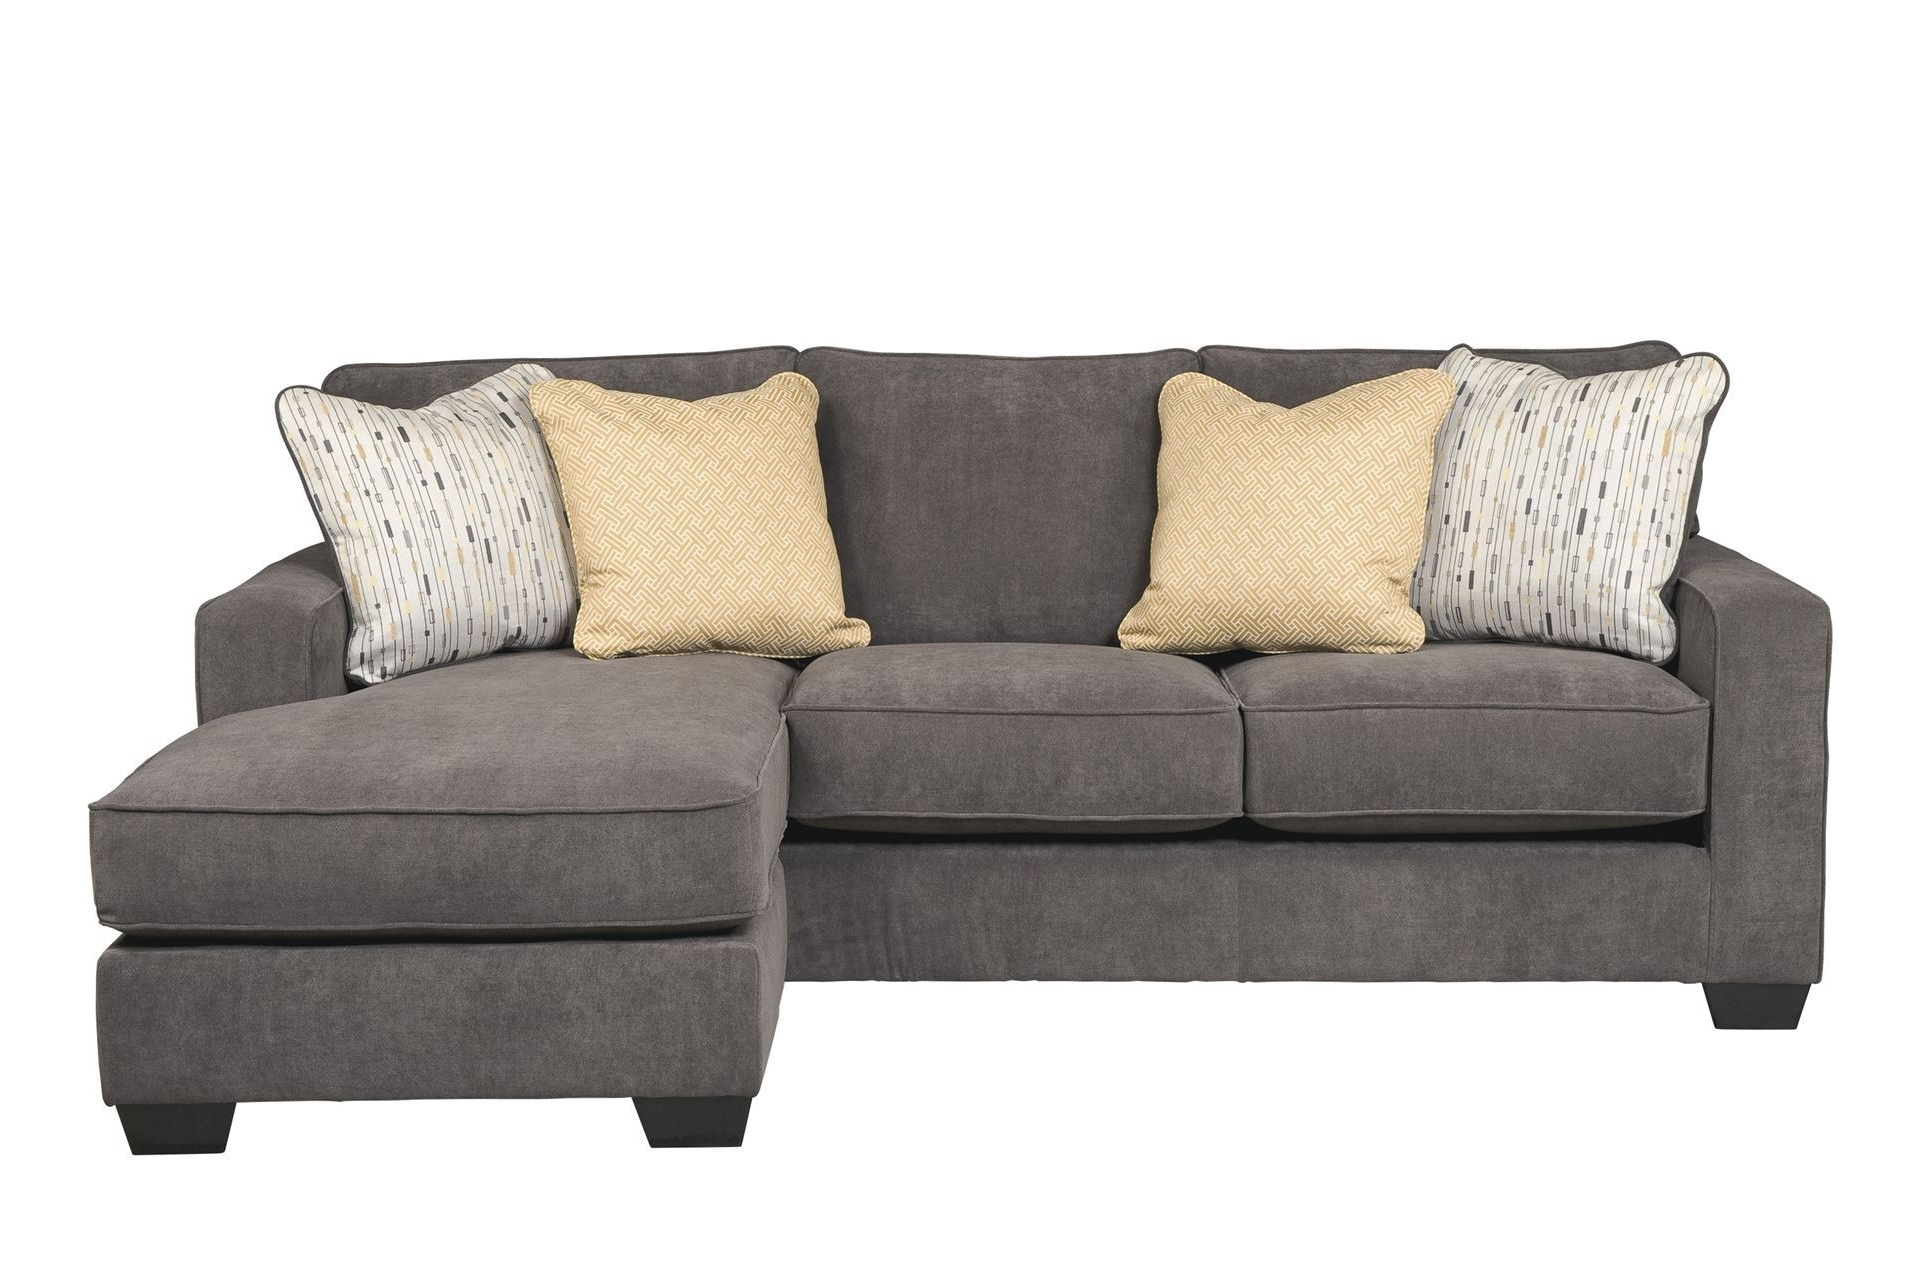 2018 Apartment Size Sectional Sofa With Chaise Cheap Sectional Sofas Inside Small Couches With Chaise (View 1 of 15)